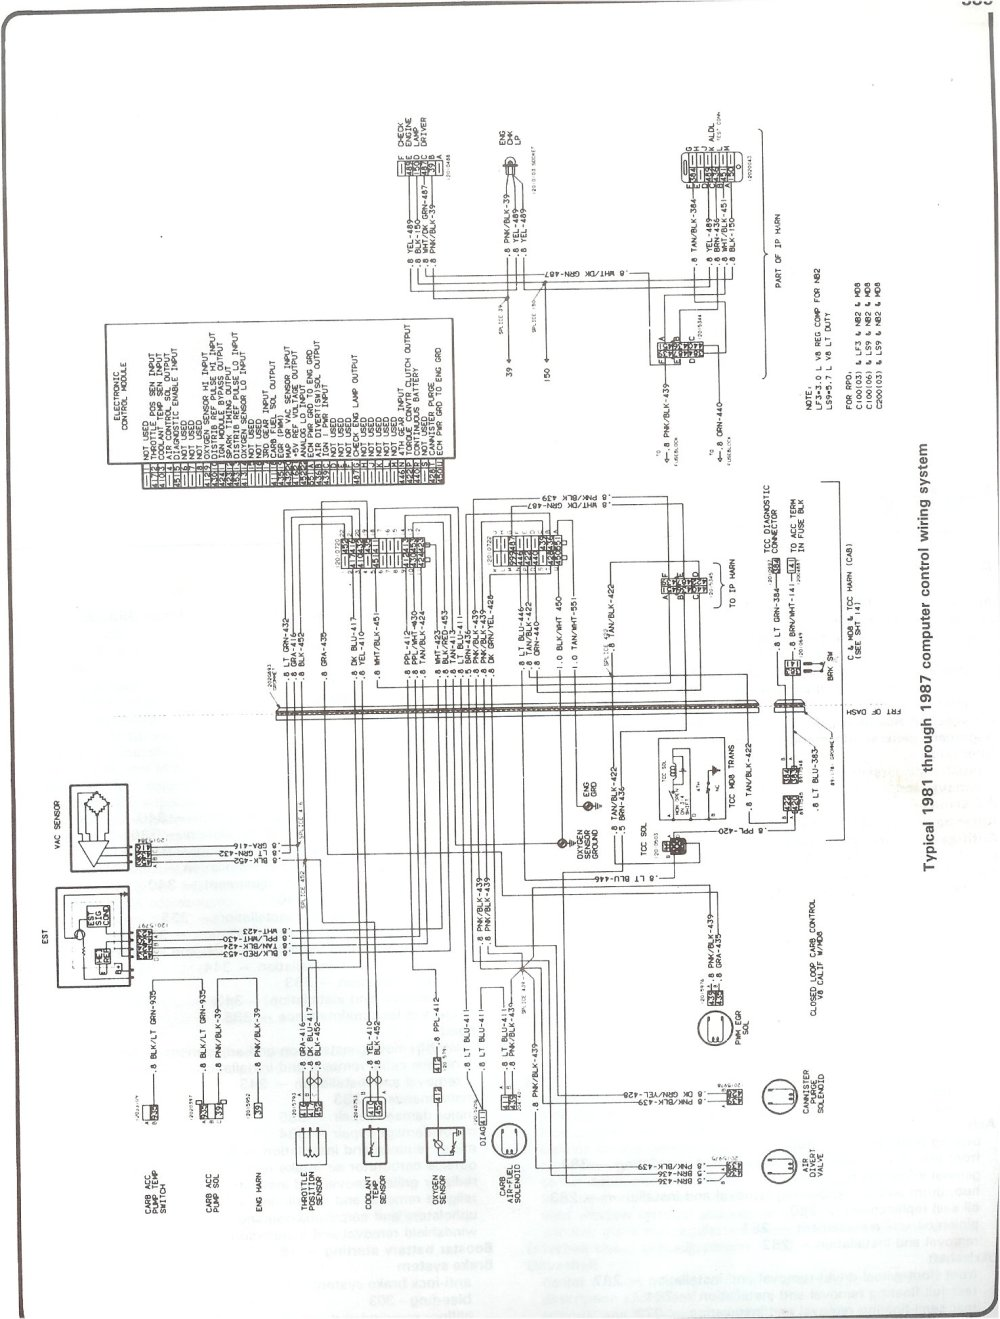 medium resolution of 82 buick regal wiring diagram wiring library1975 chevy p30 wiring diagram data wiring schema 1982 chevy